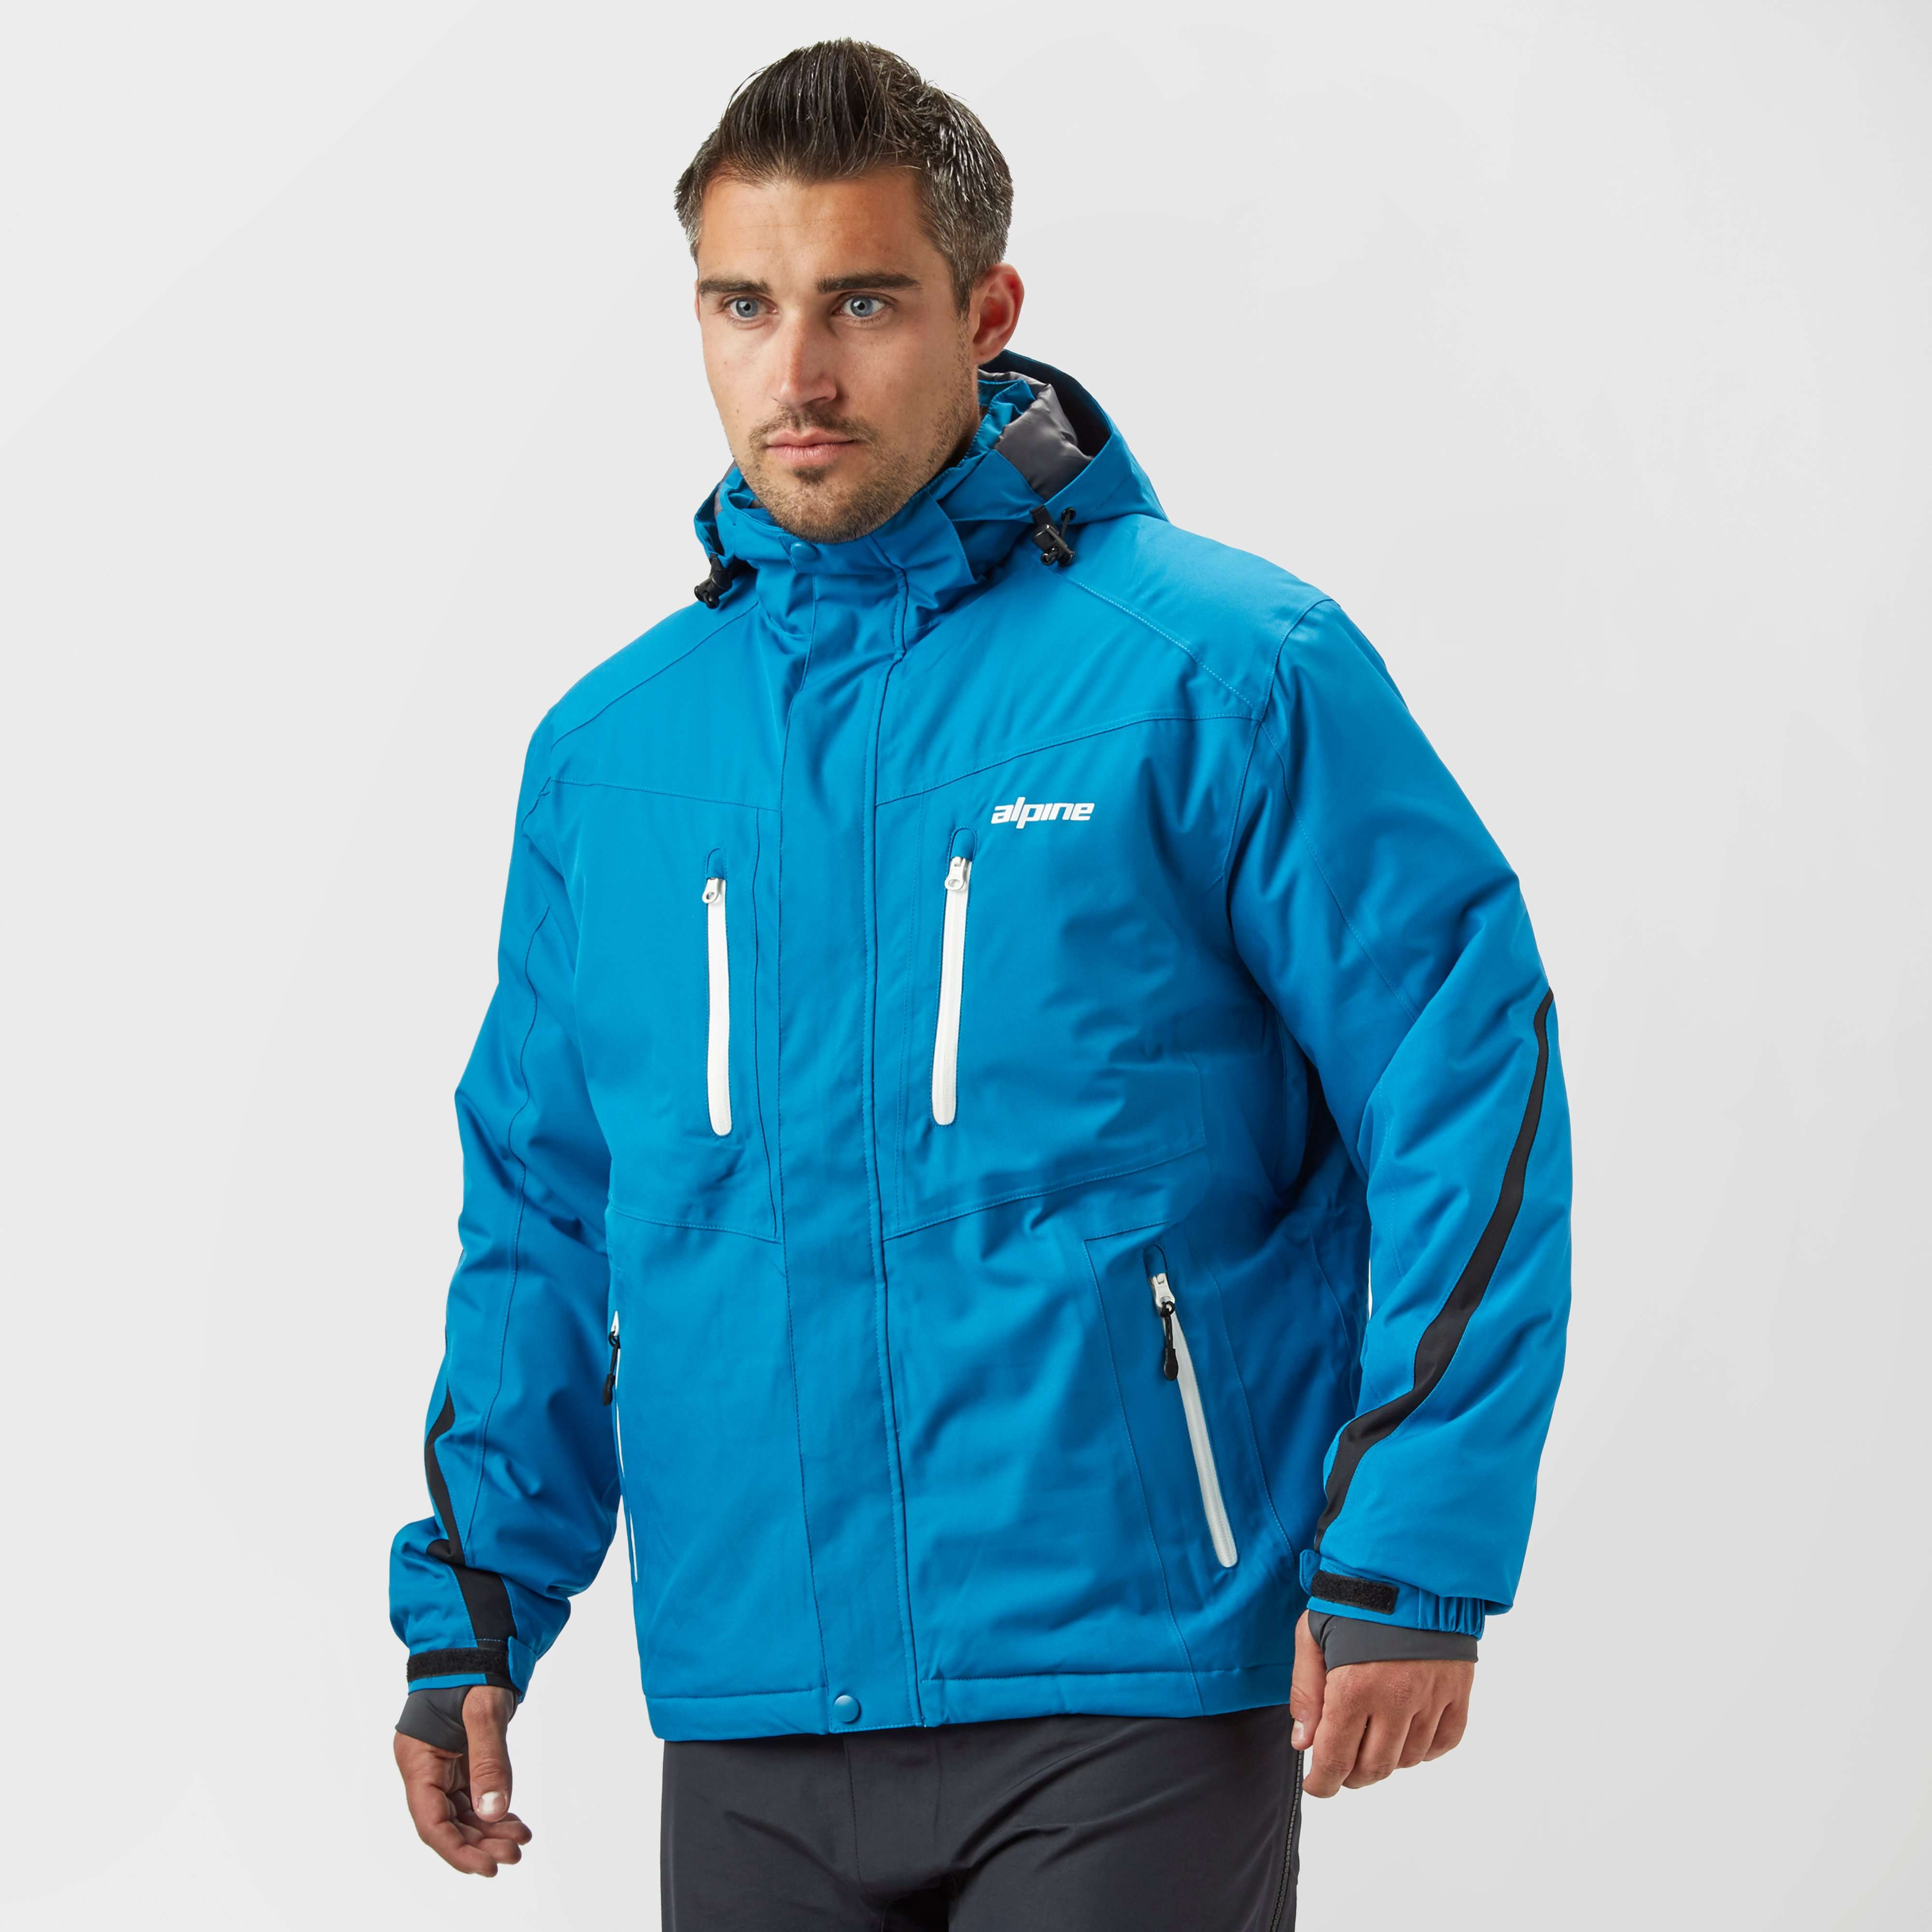 ALPINE Men's Tignes Jacket